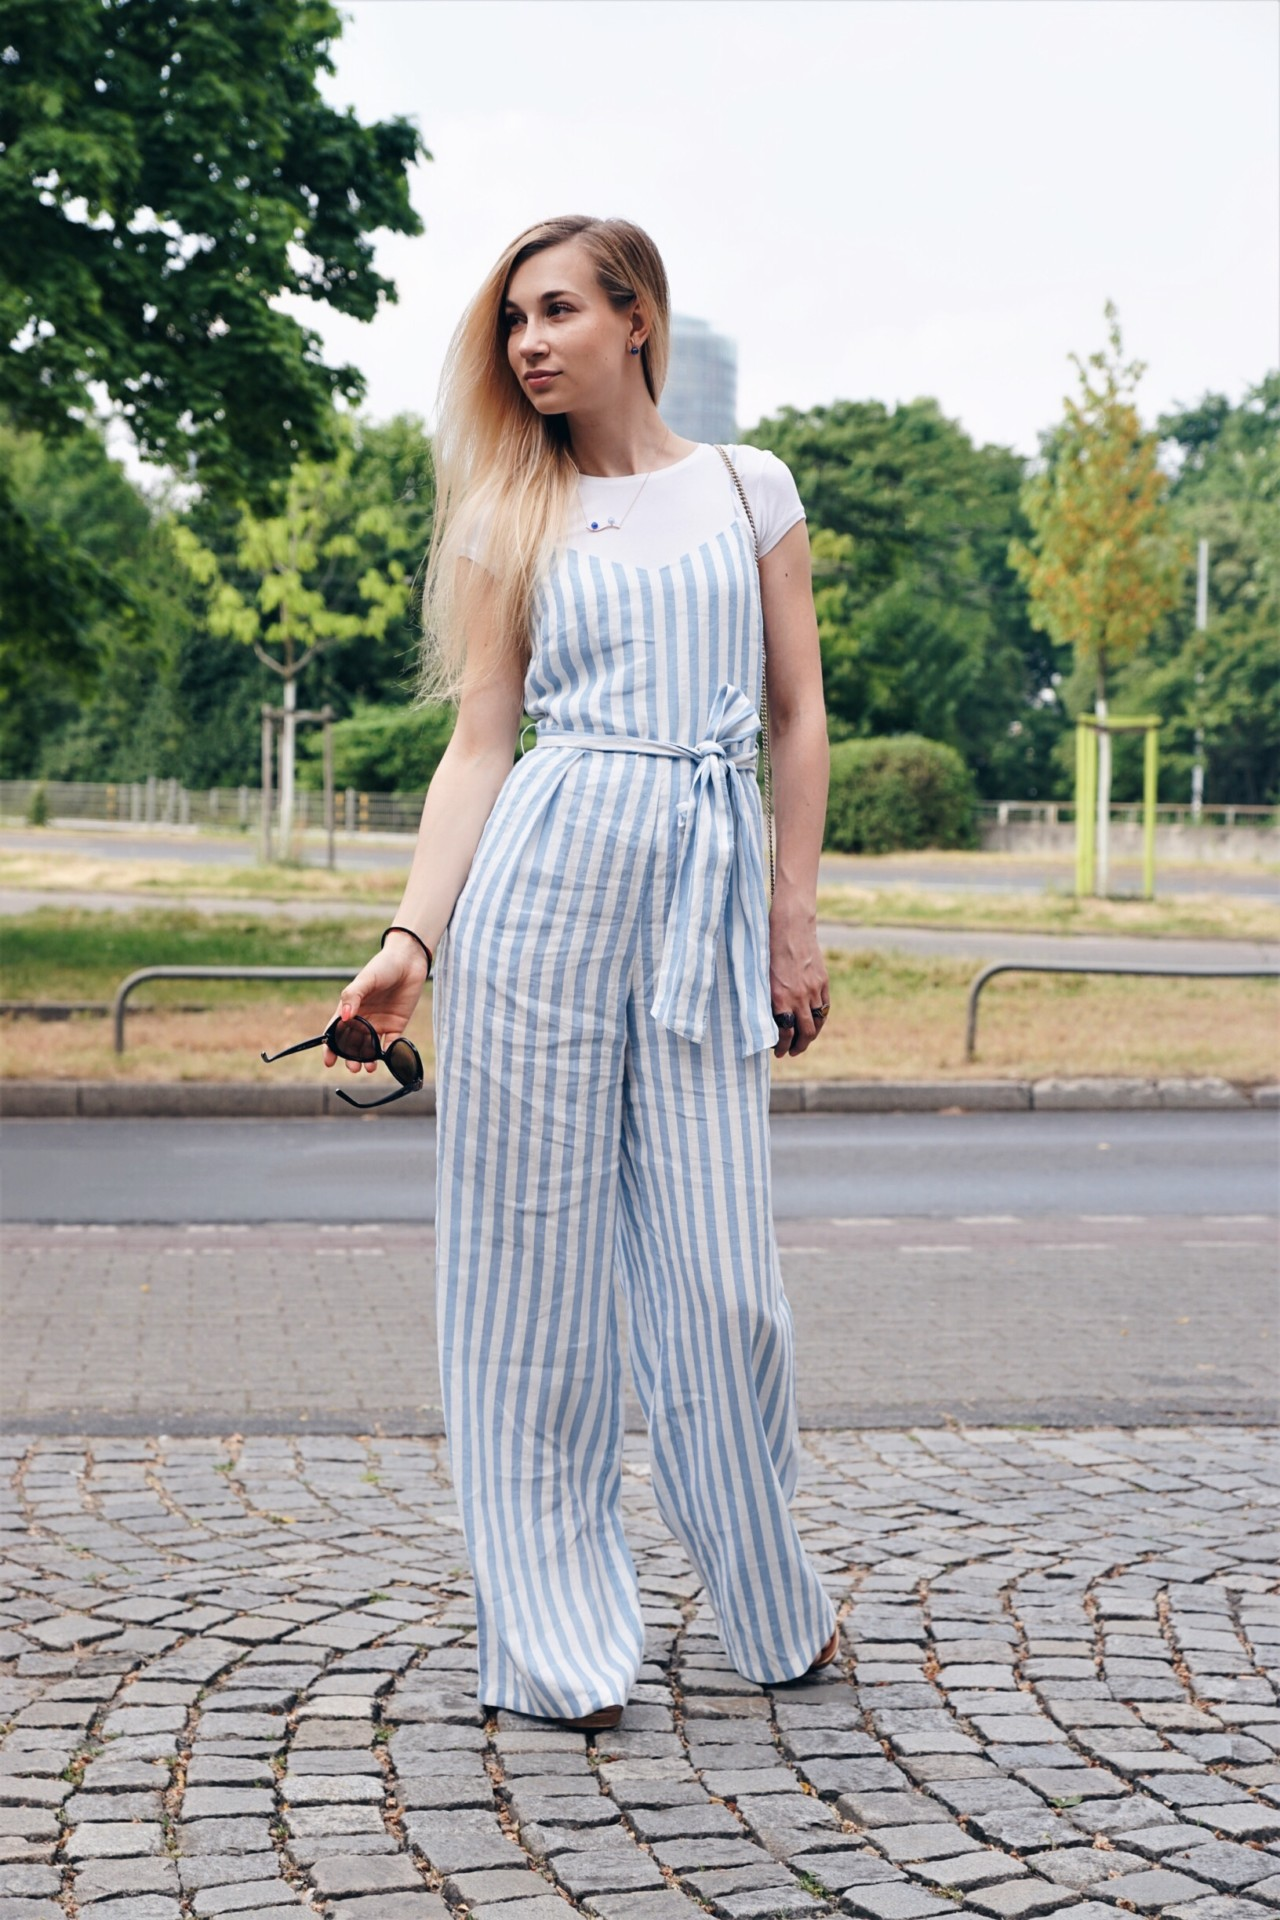 Mango_overall_DBKStylez_streetstyle_fashion_stripes_streifen_mode_мода_полоски_стиль_манго